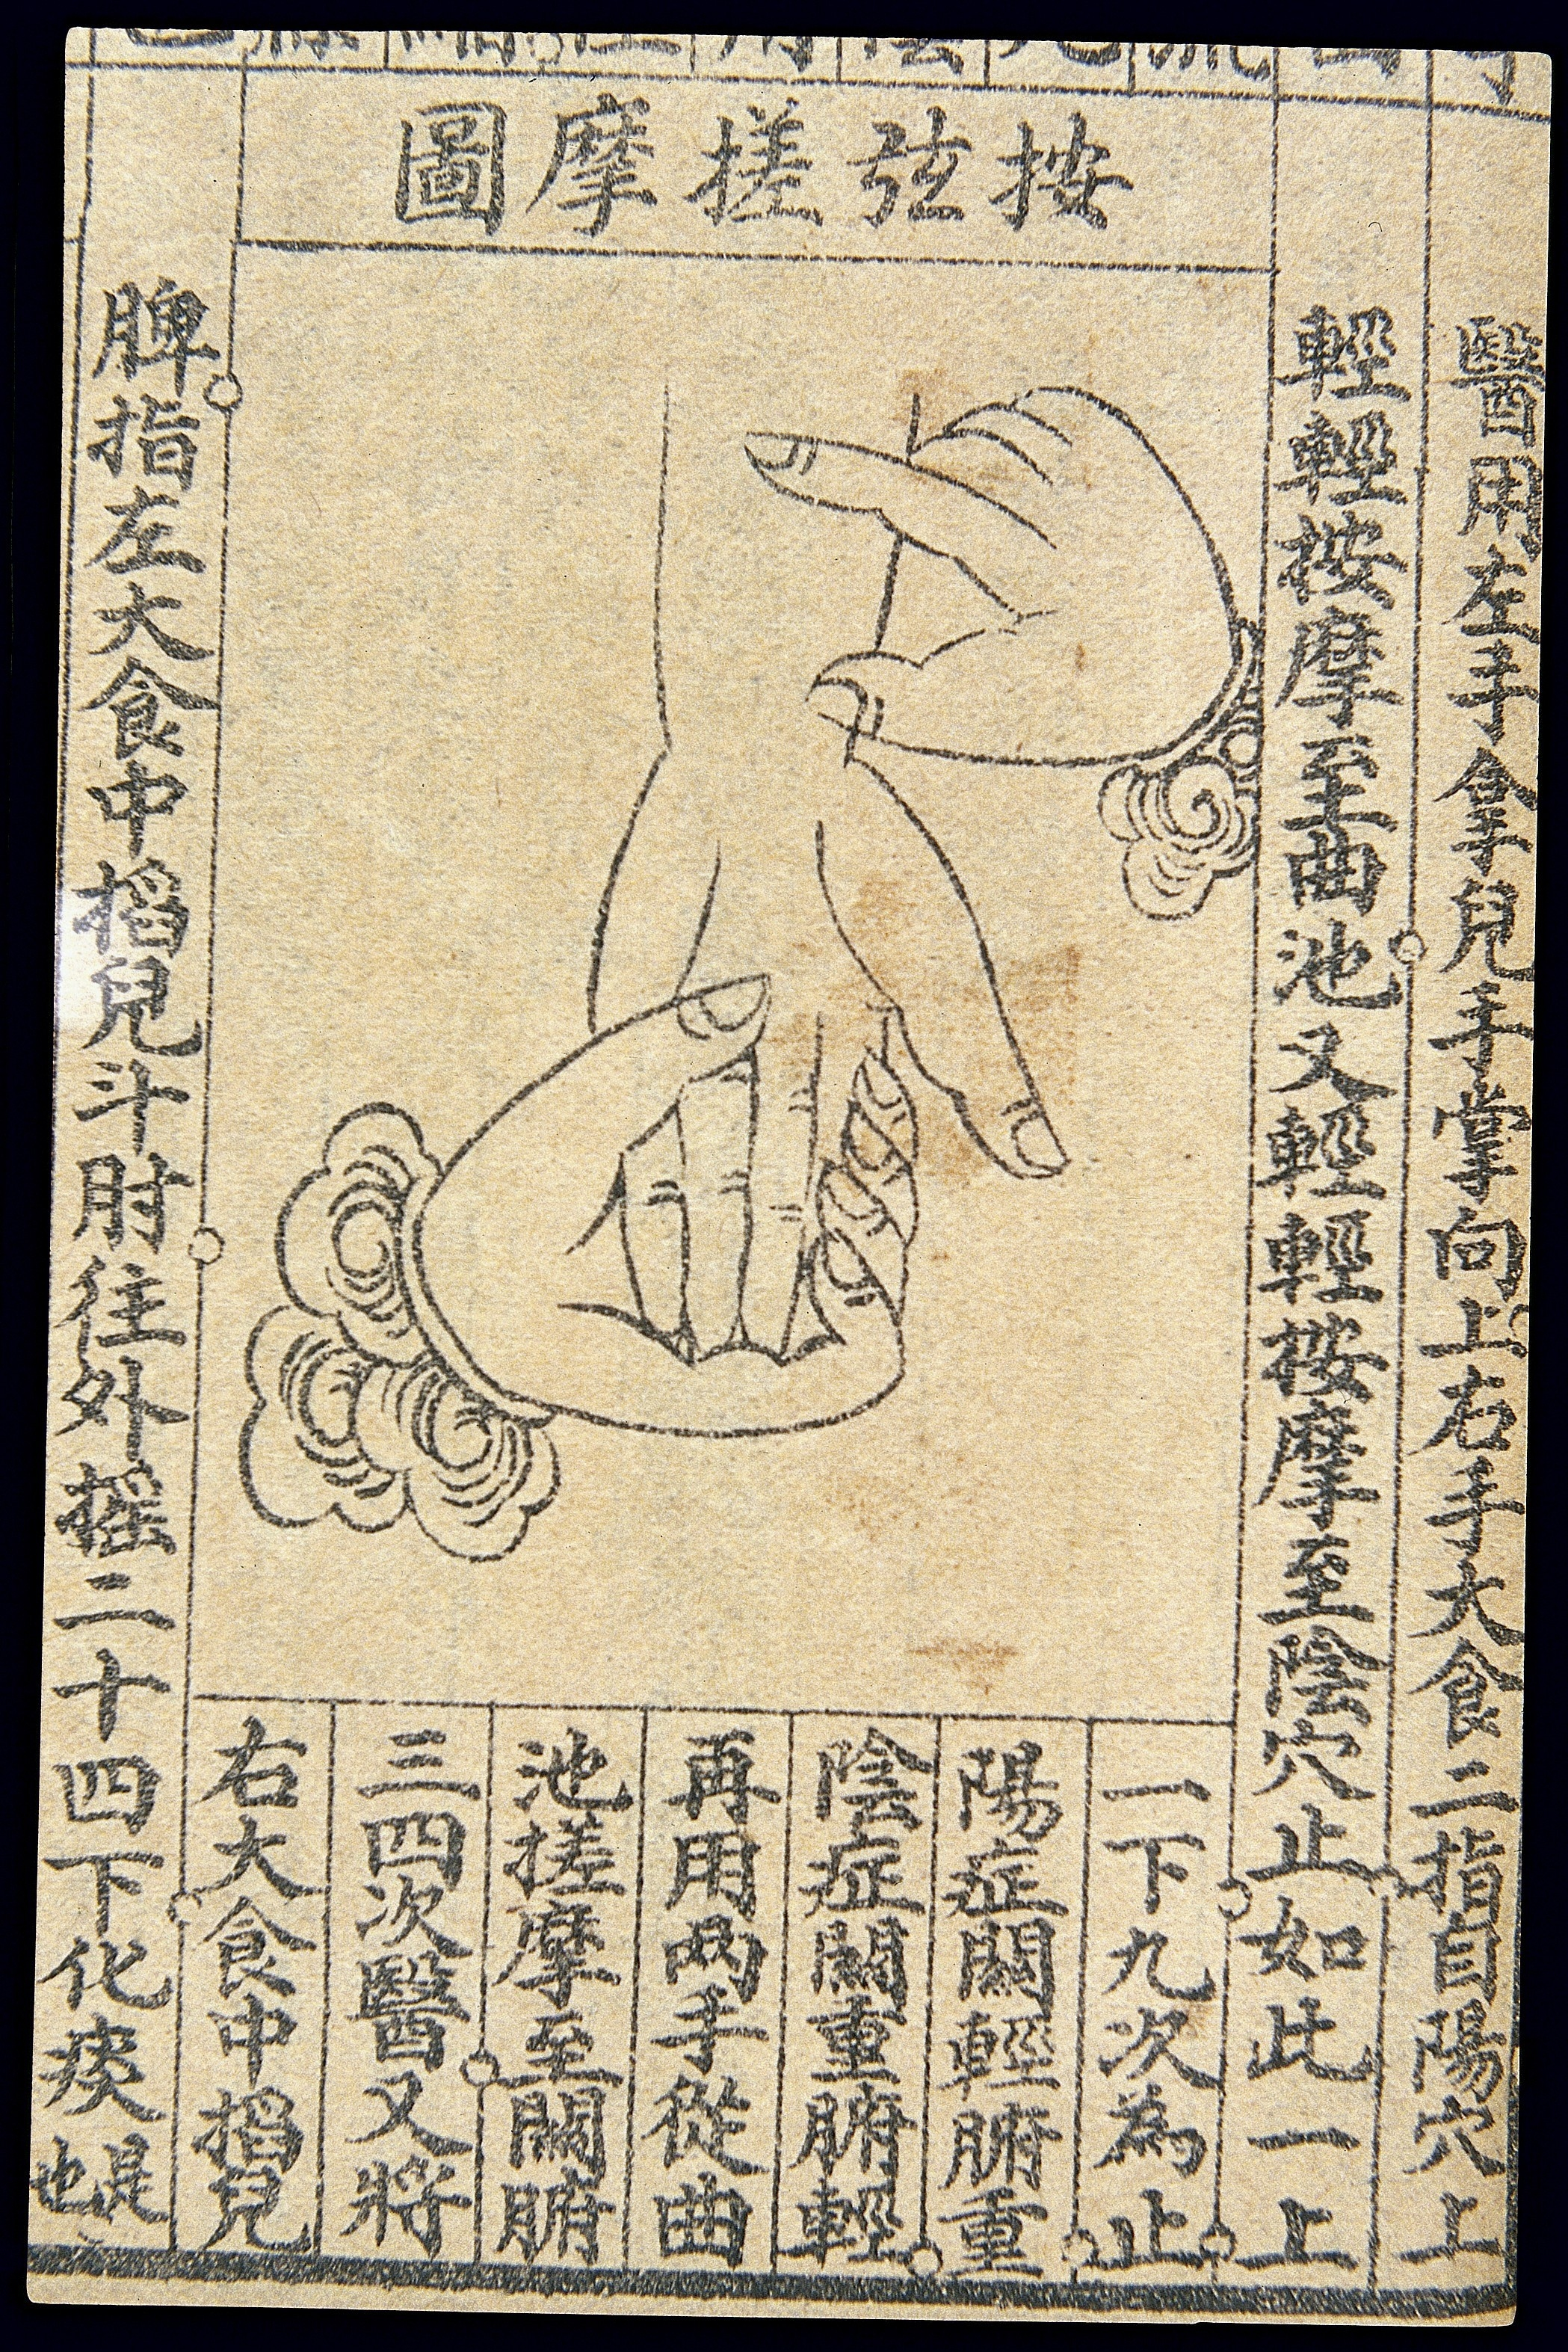 A Traditional Chinese Medicine hand massage chart.